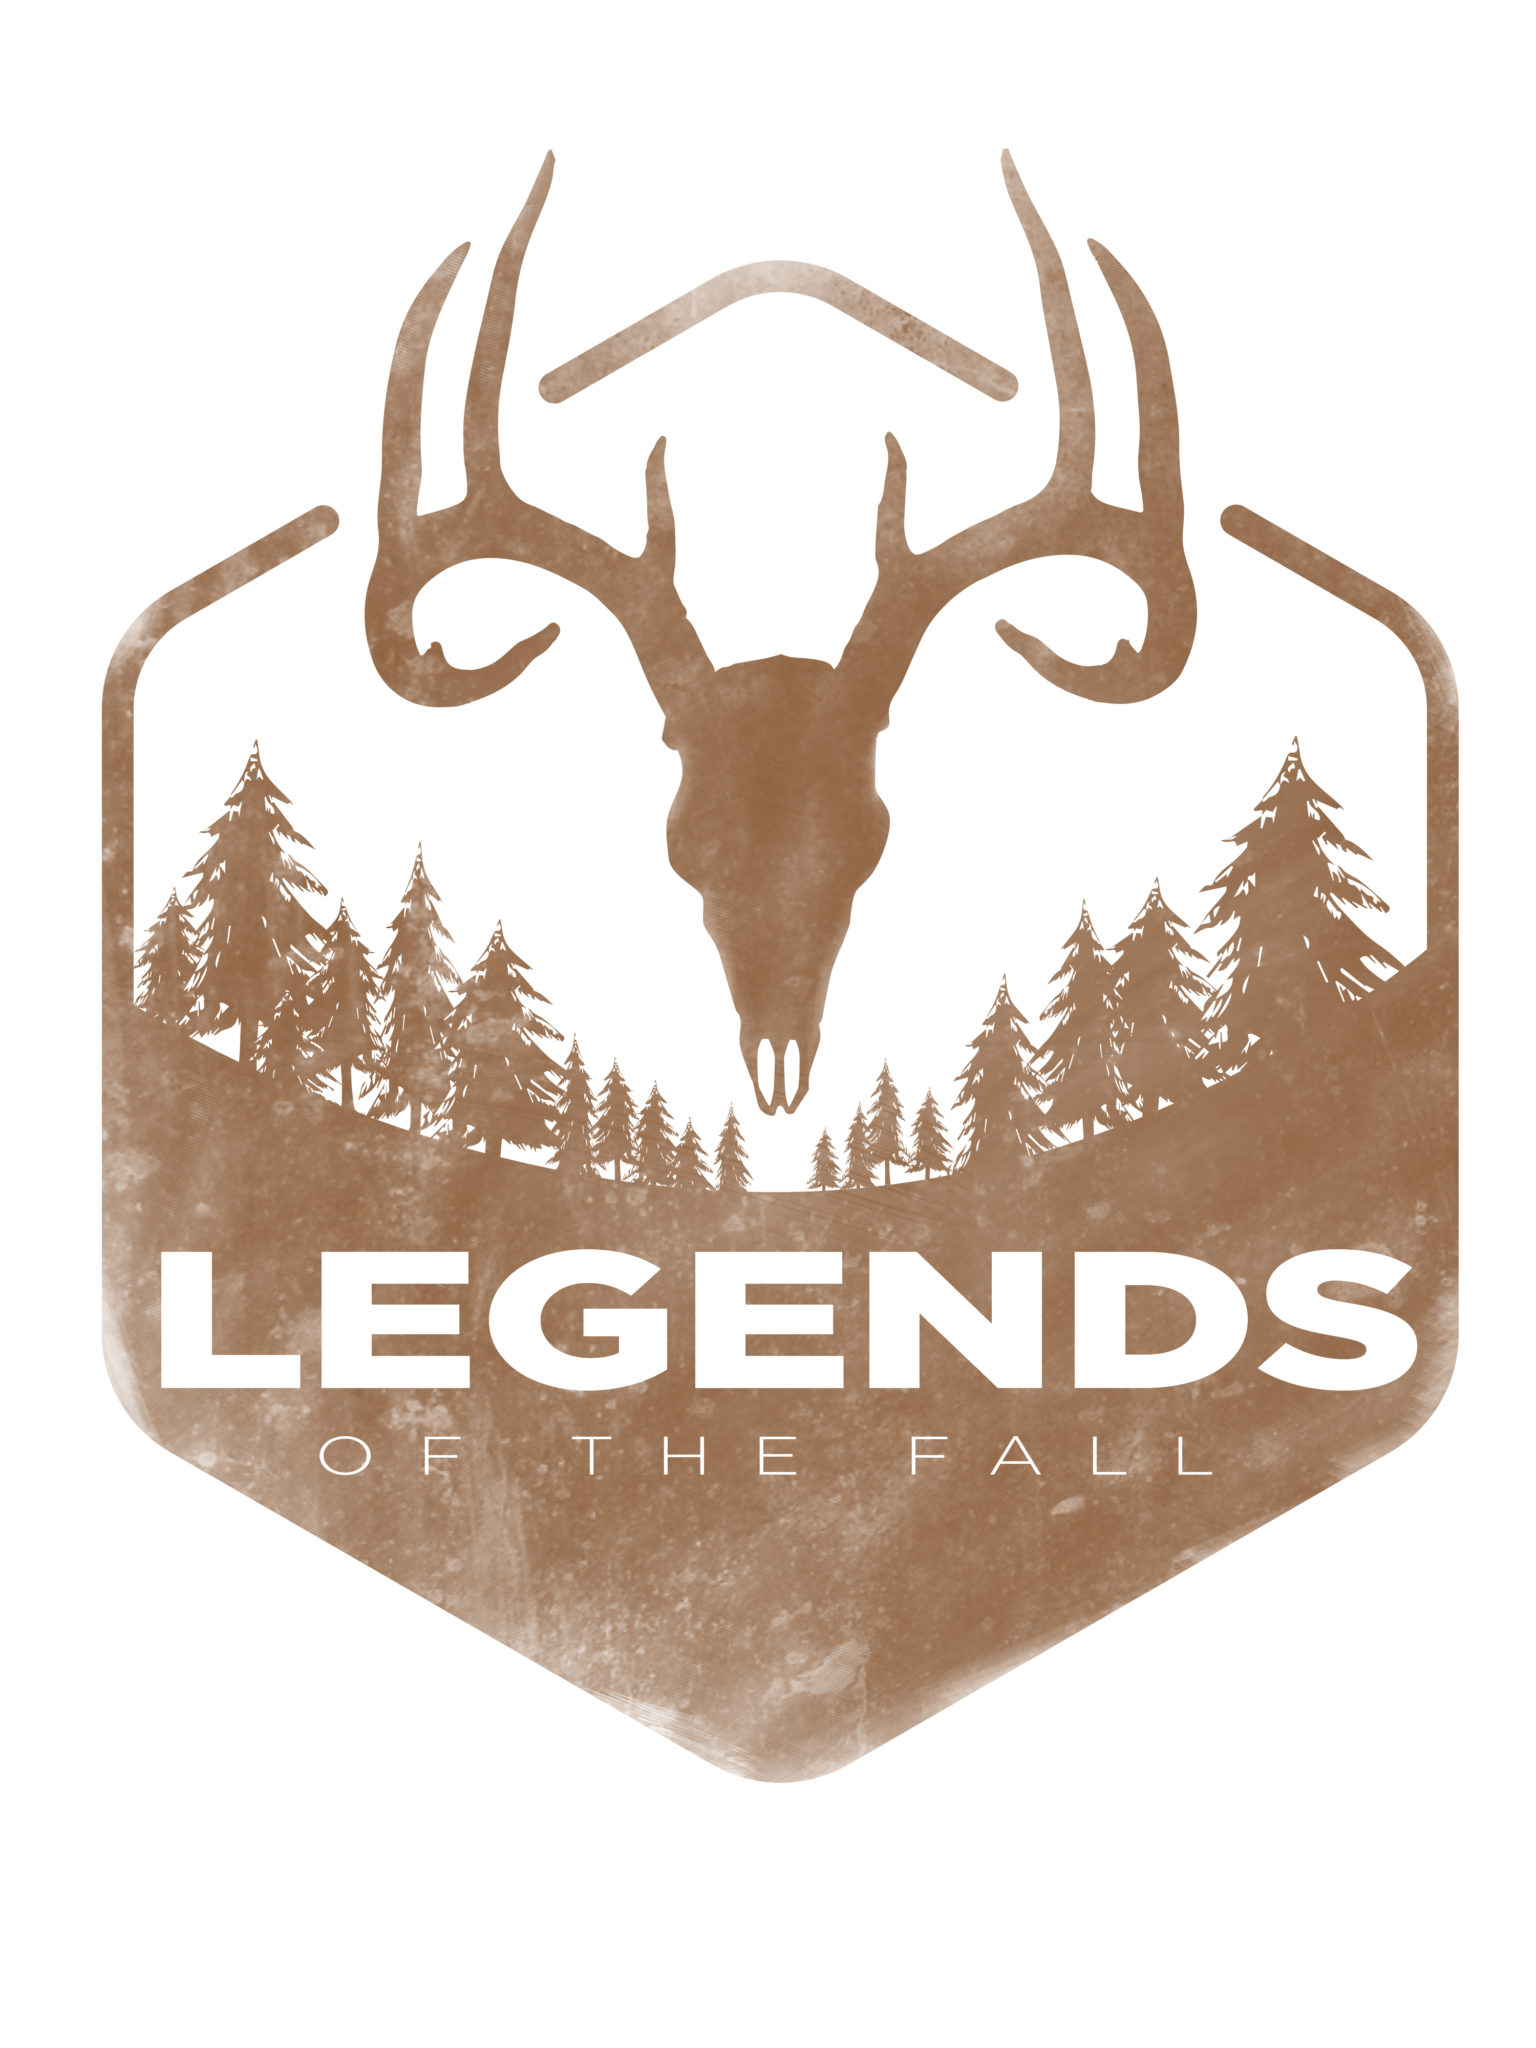 The Legends of the Fall